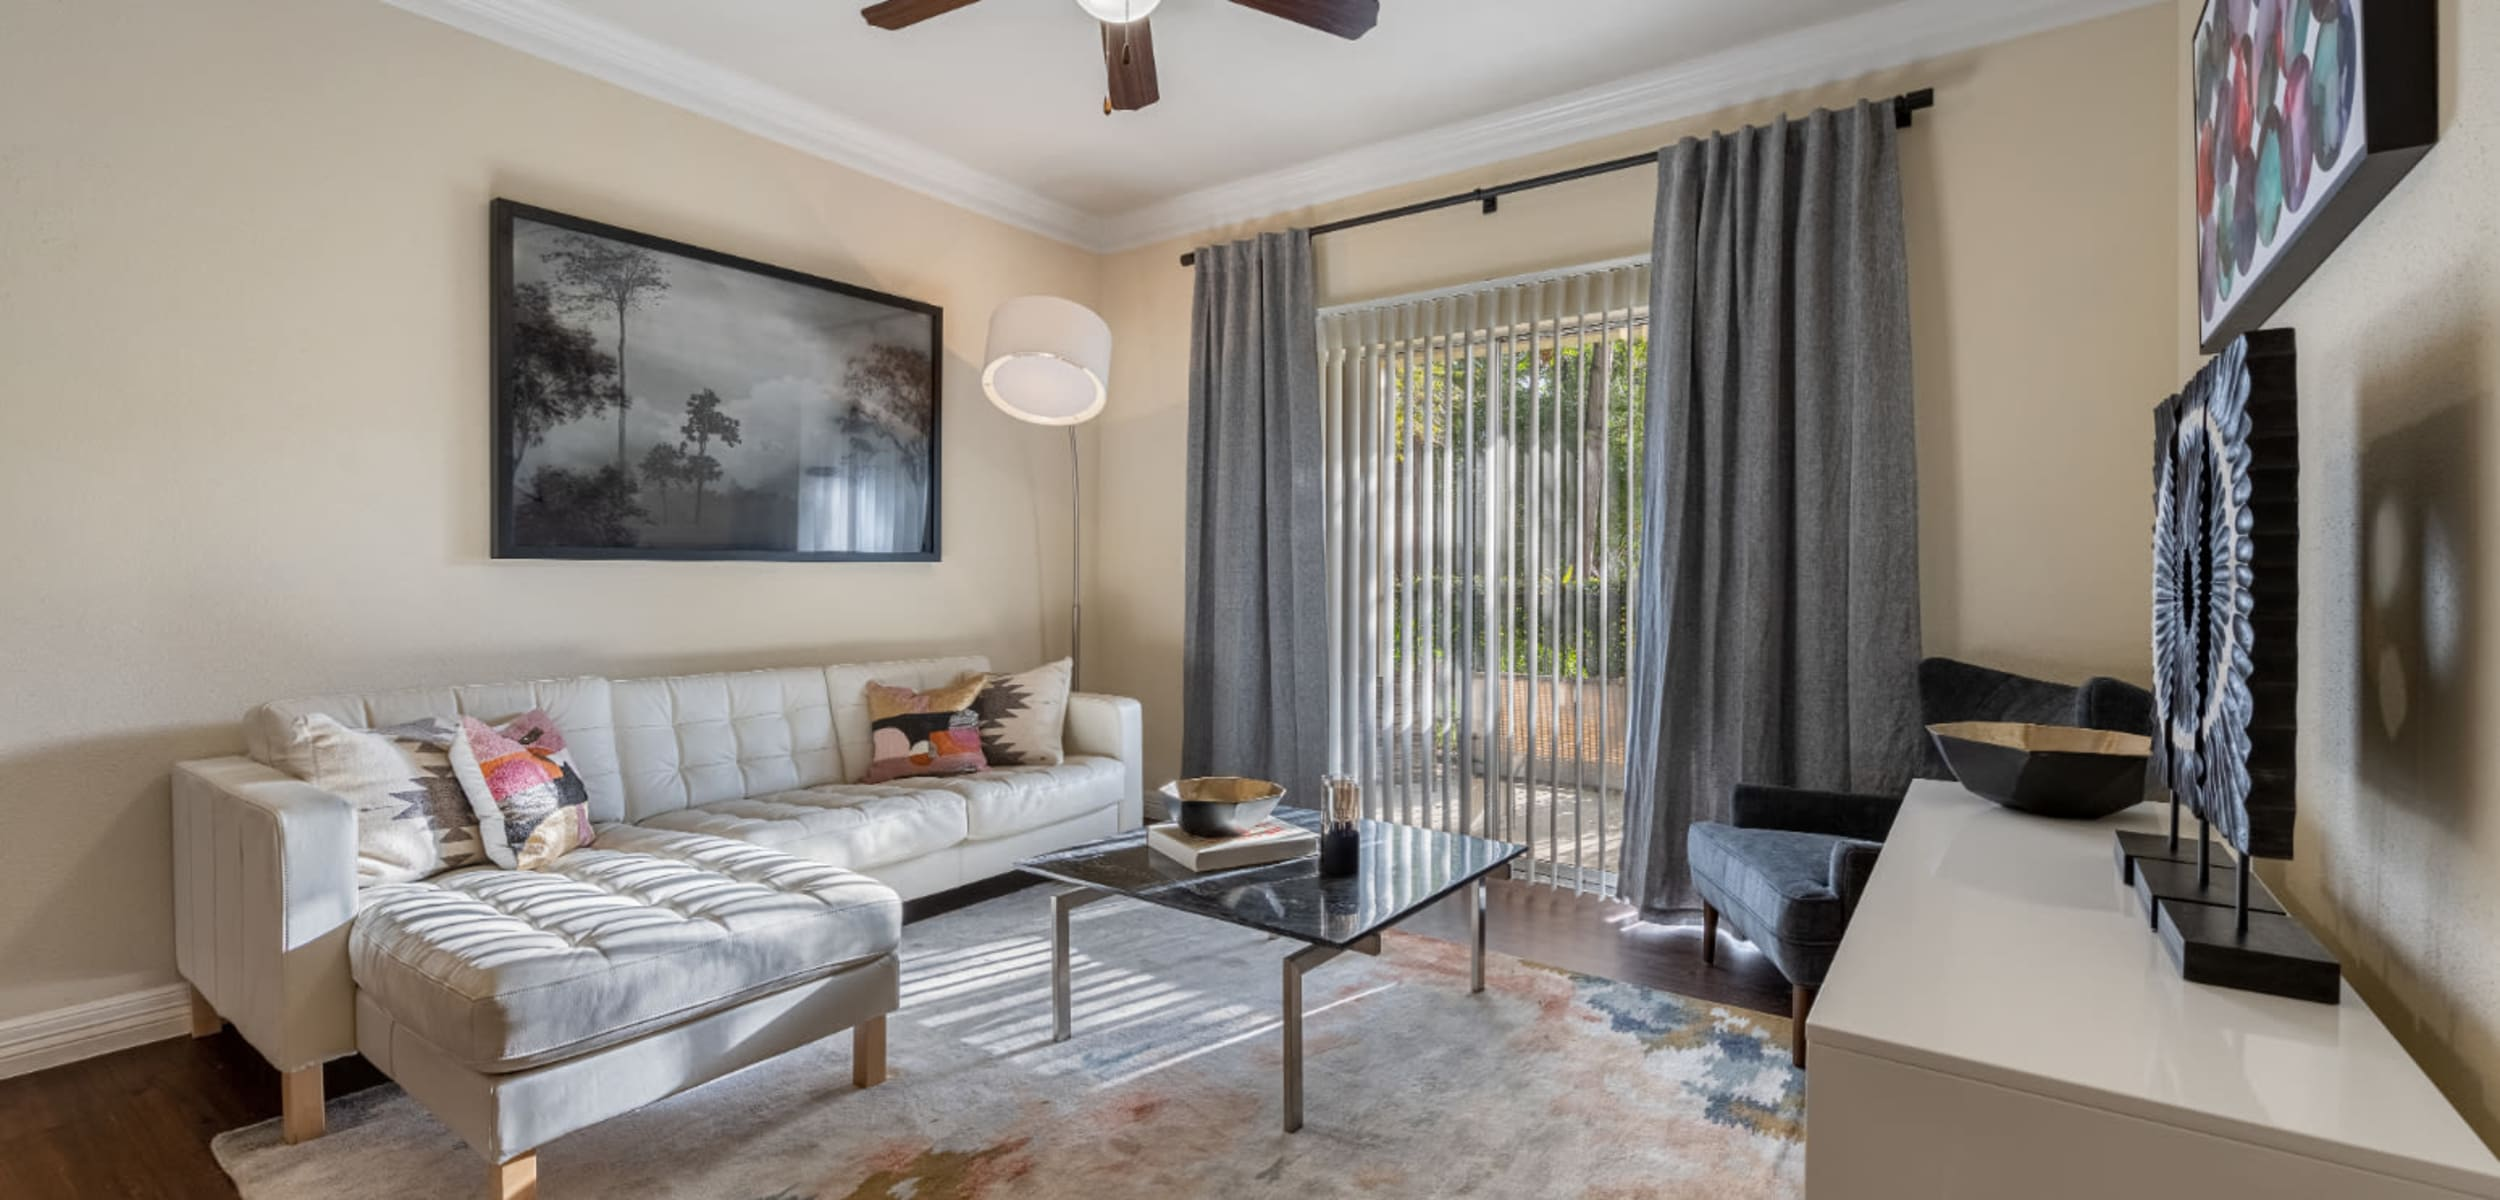 Modern and sleek living room with large rug on wood floor at Marquis at Kingwood in Kingwood, Texas